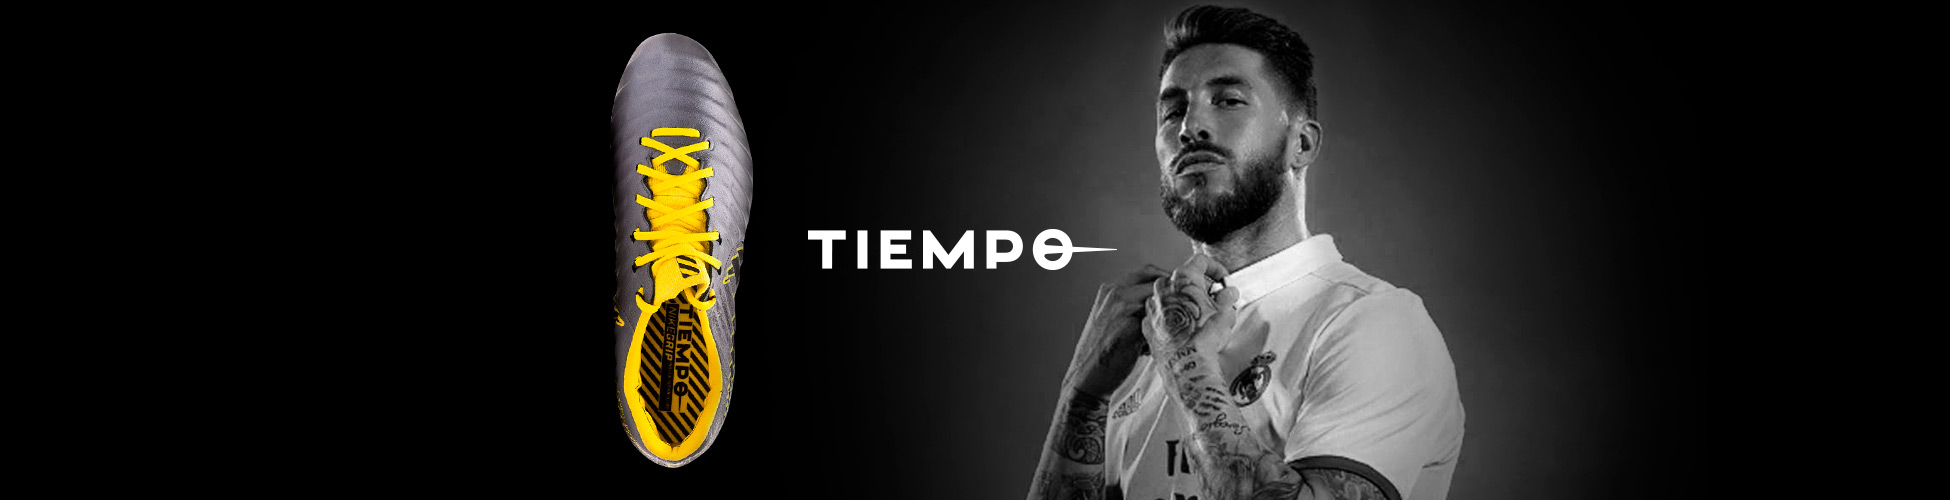 60ed55c6fd6 The boots worn by Sergio Ramos - Football store Fútbol Emotion